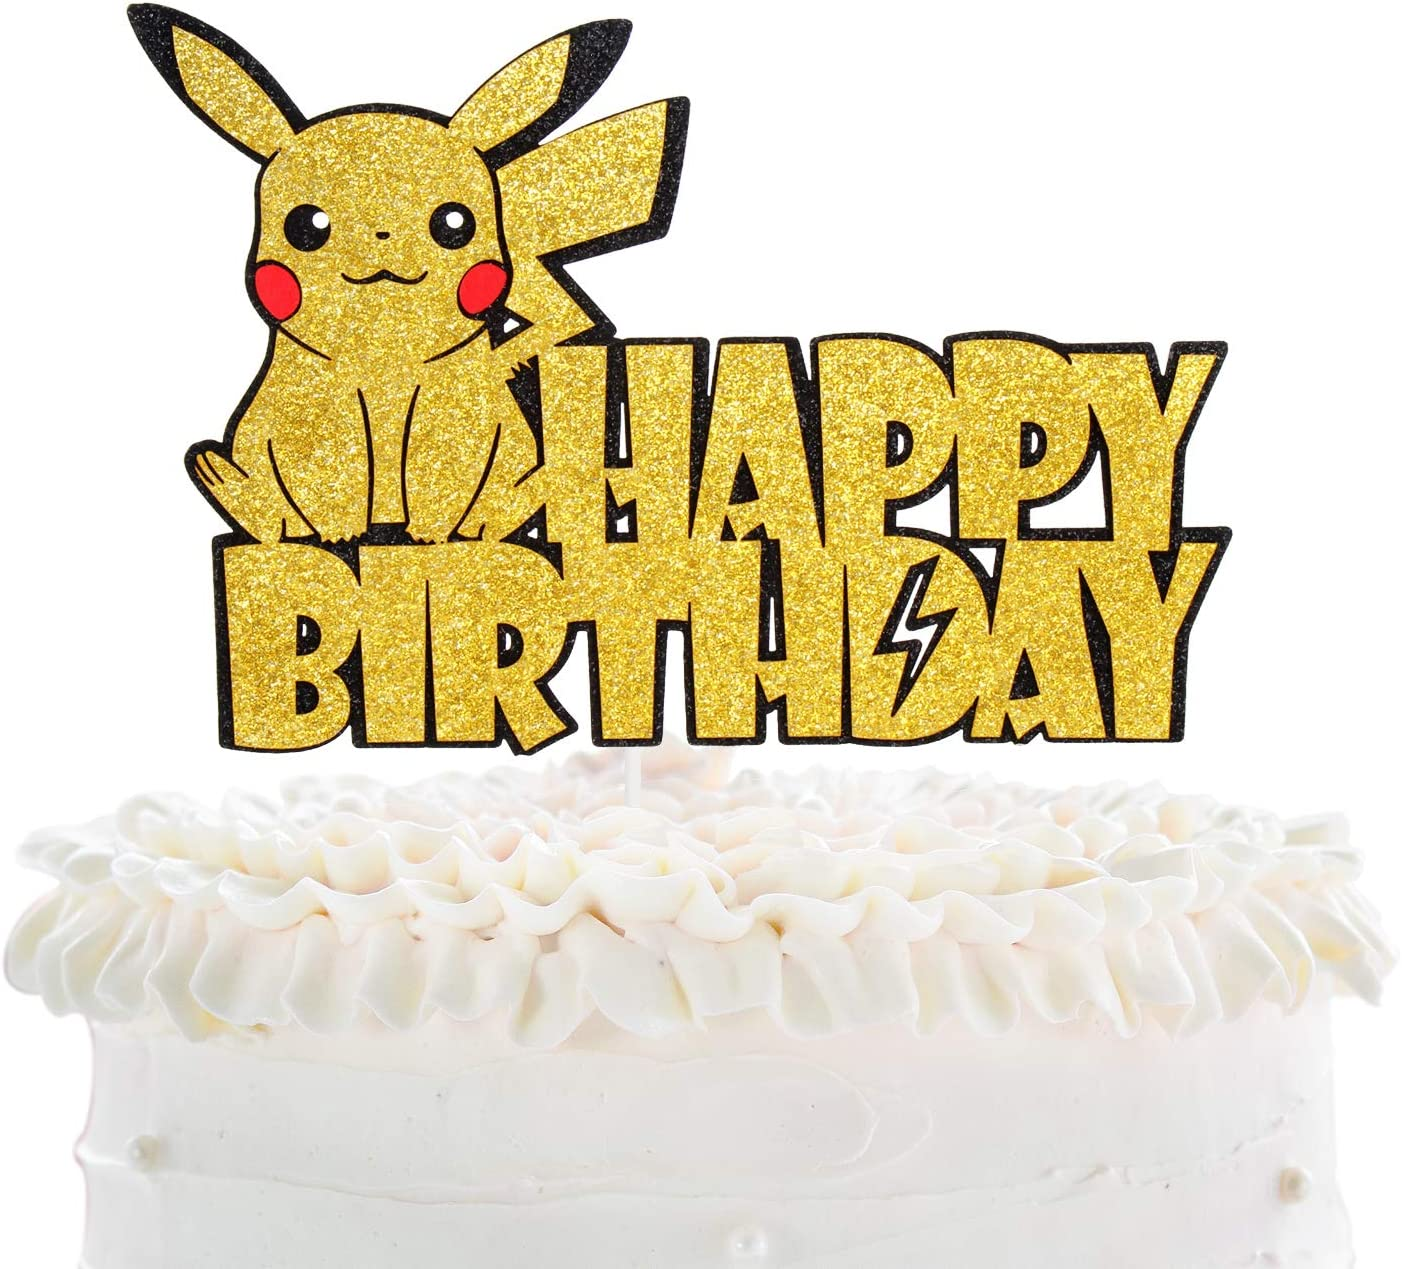 Creations Pikachu Happy Birthday Cake Topper - Pokeman Go Theme Party Adorable Glitter Pikachu Cake Décor - Baby Shower Child Birthday Party Decoration